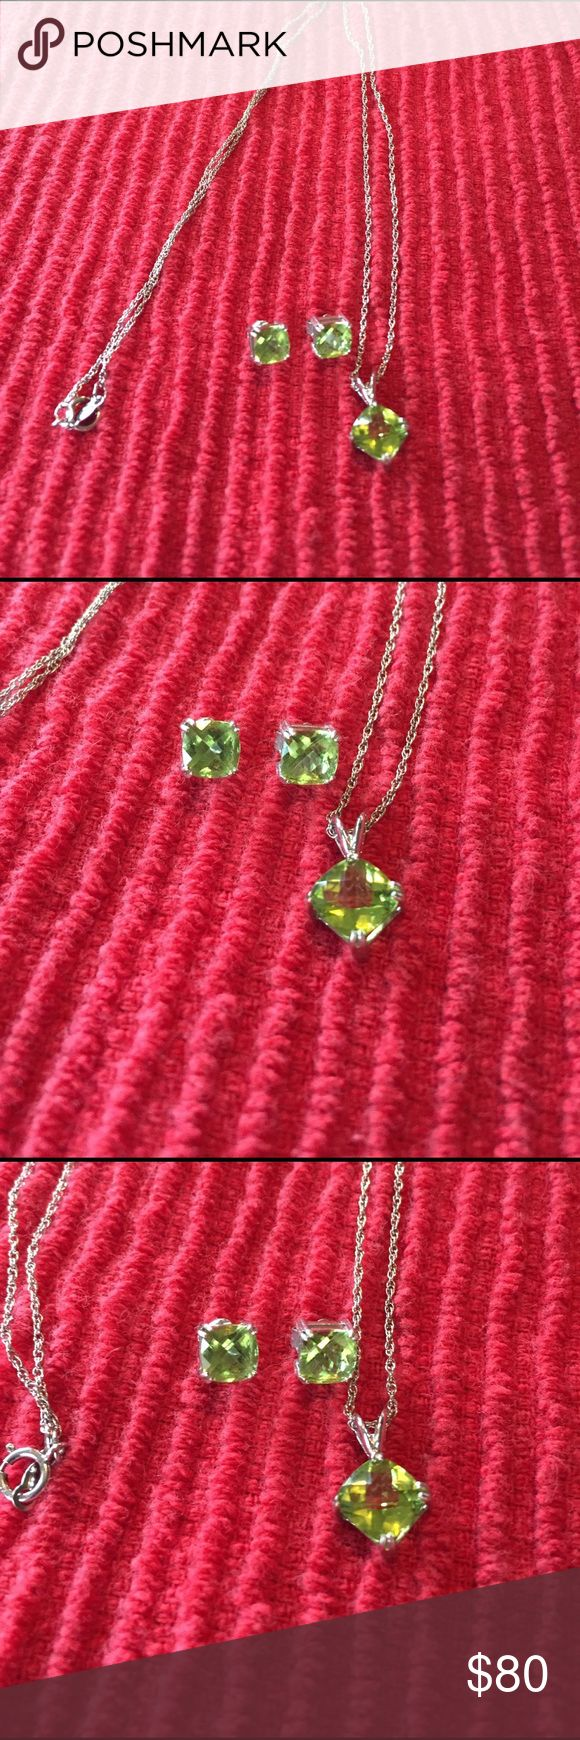 Peridot Necklace And Earrings Set Great Used Condition 925 Silver 💯  Peridot